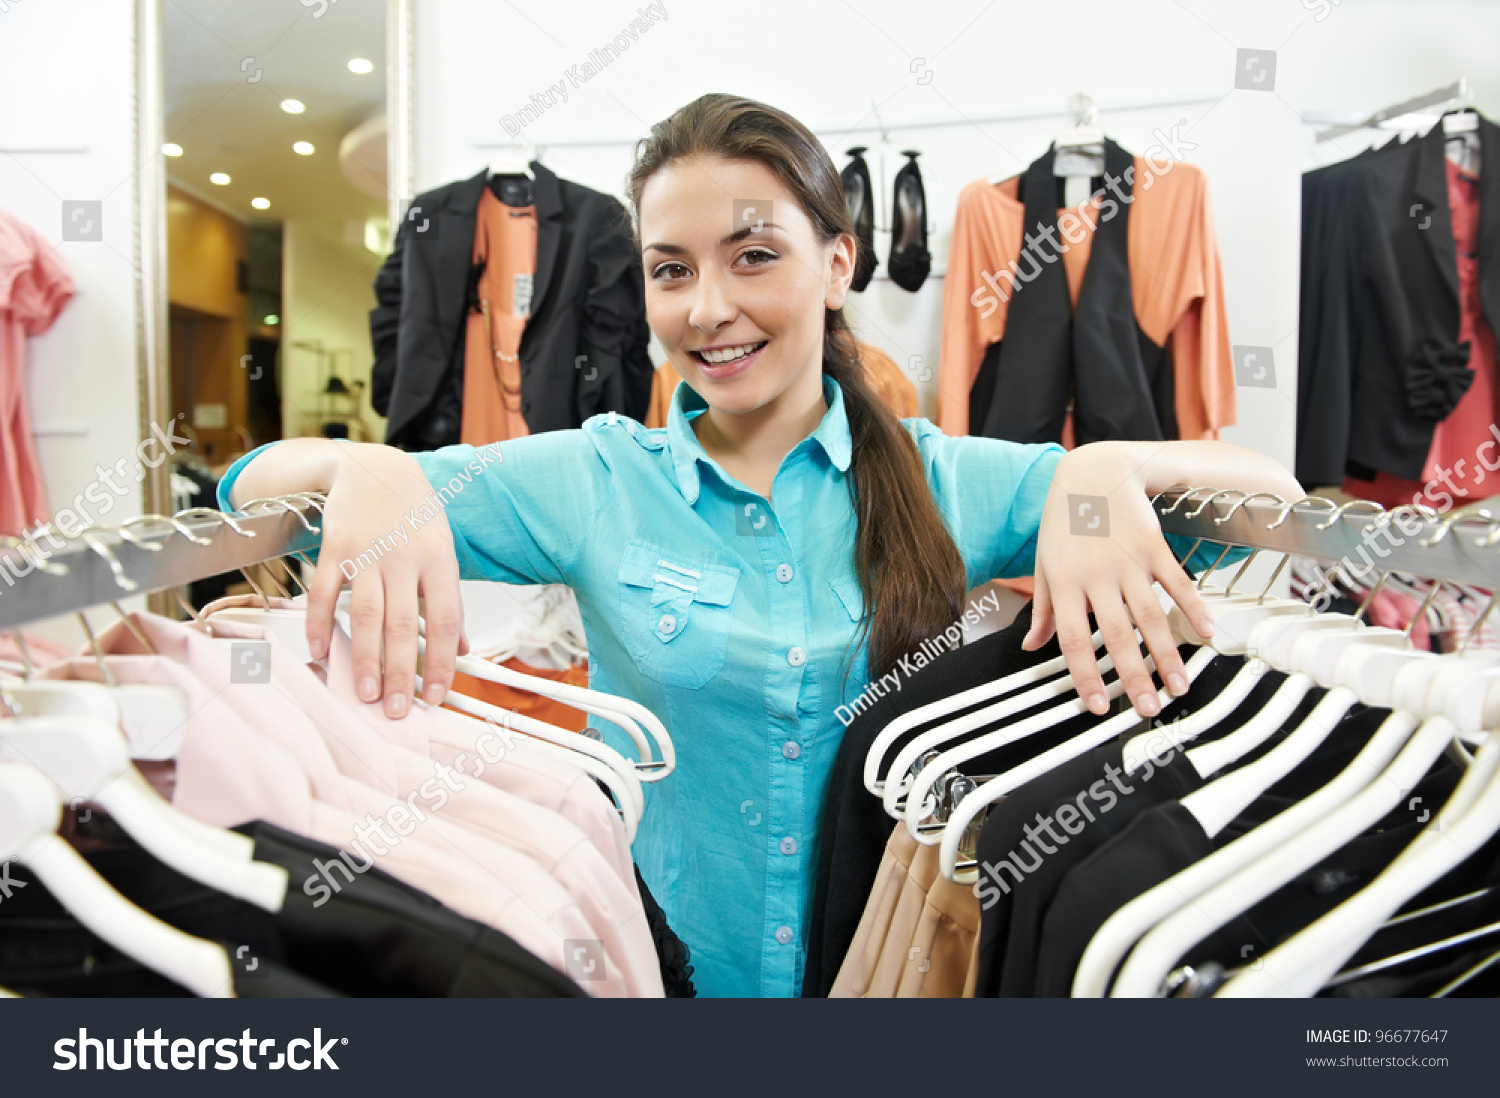 young smiling w seller assistant hands stock photo  young smiling w seller assistant hands on clothing hangers at shopping store